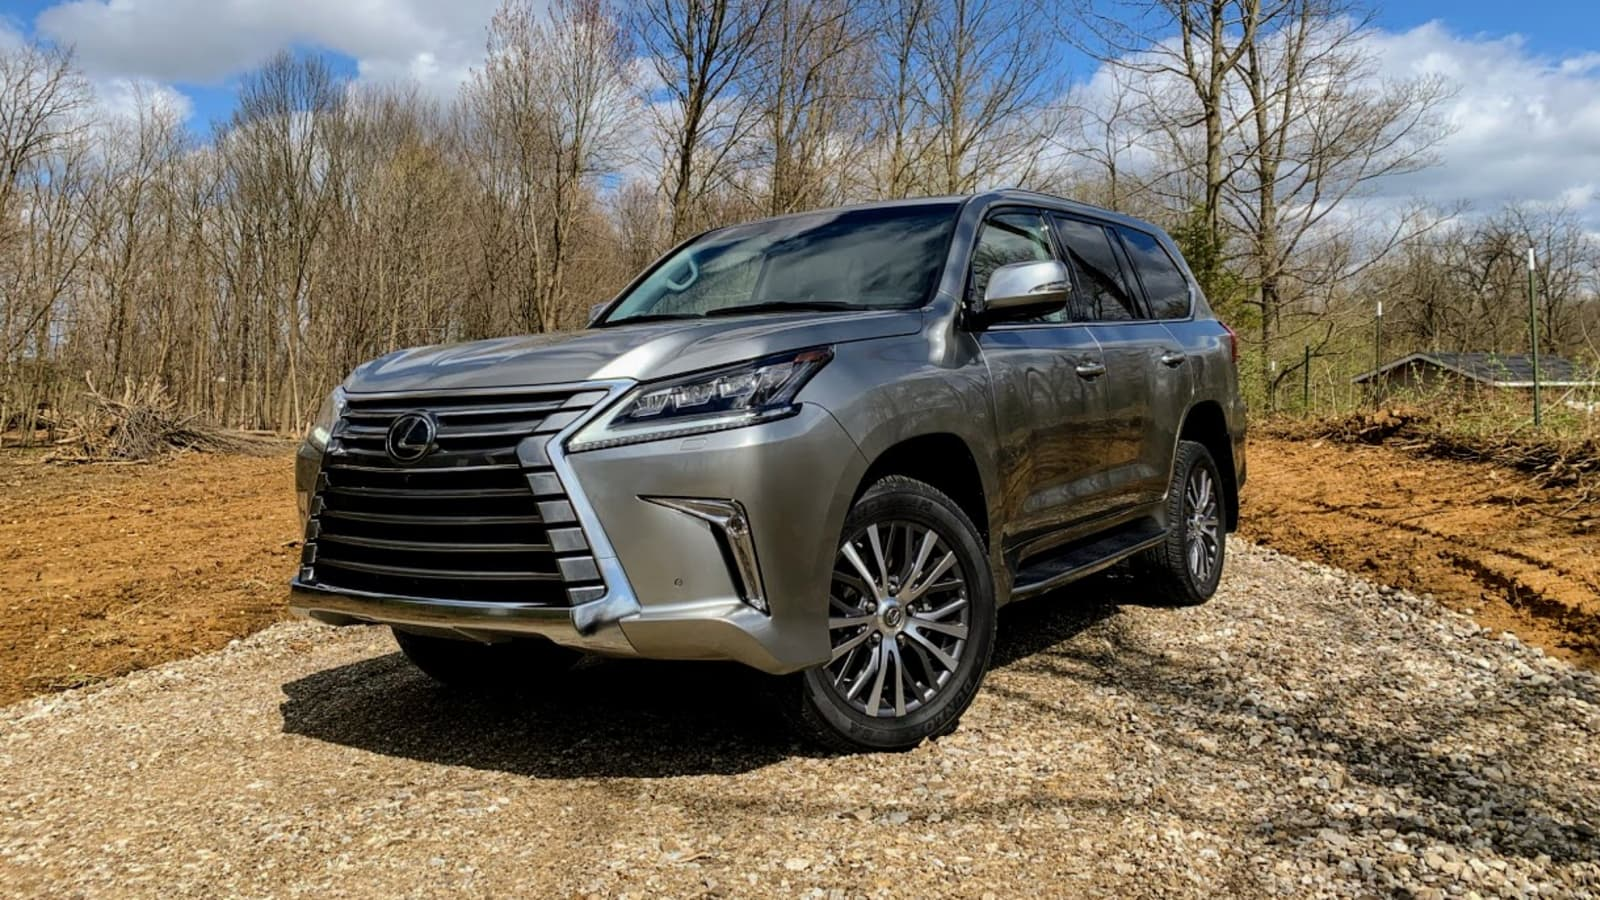 Review The Lexus Lx 570 Is A Serious Off Road Suv That Gives The